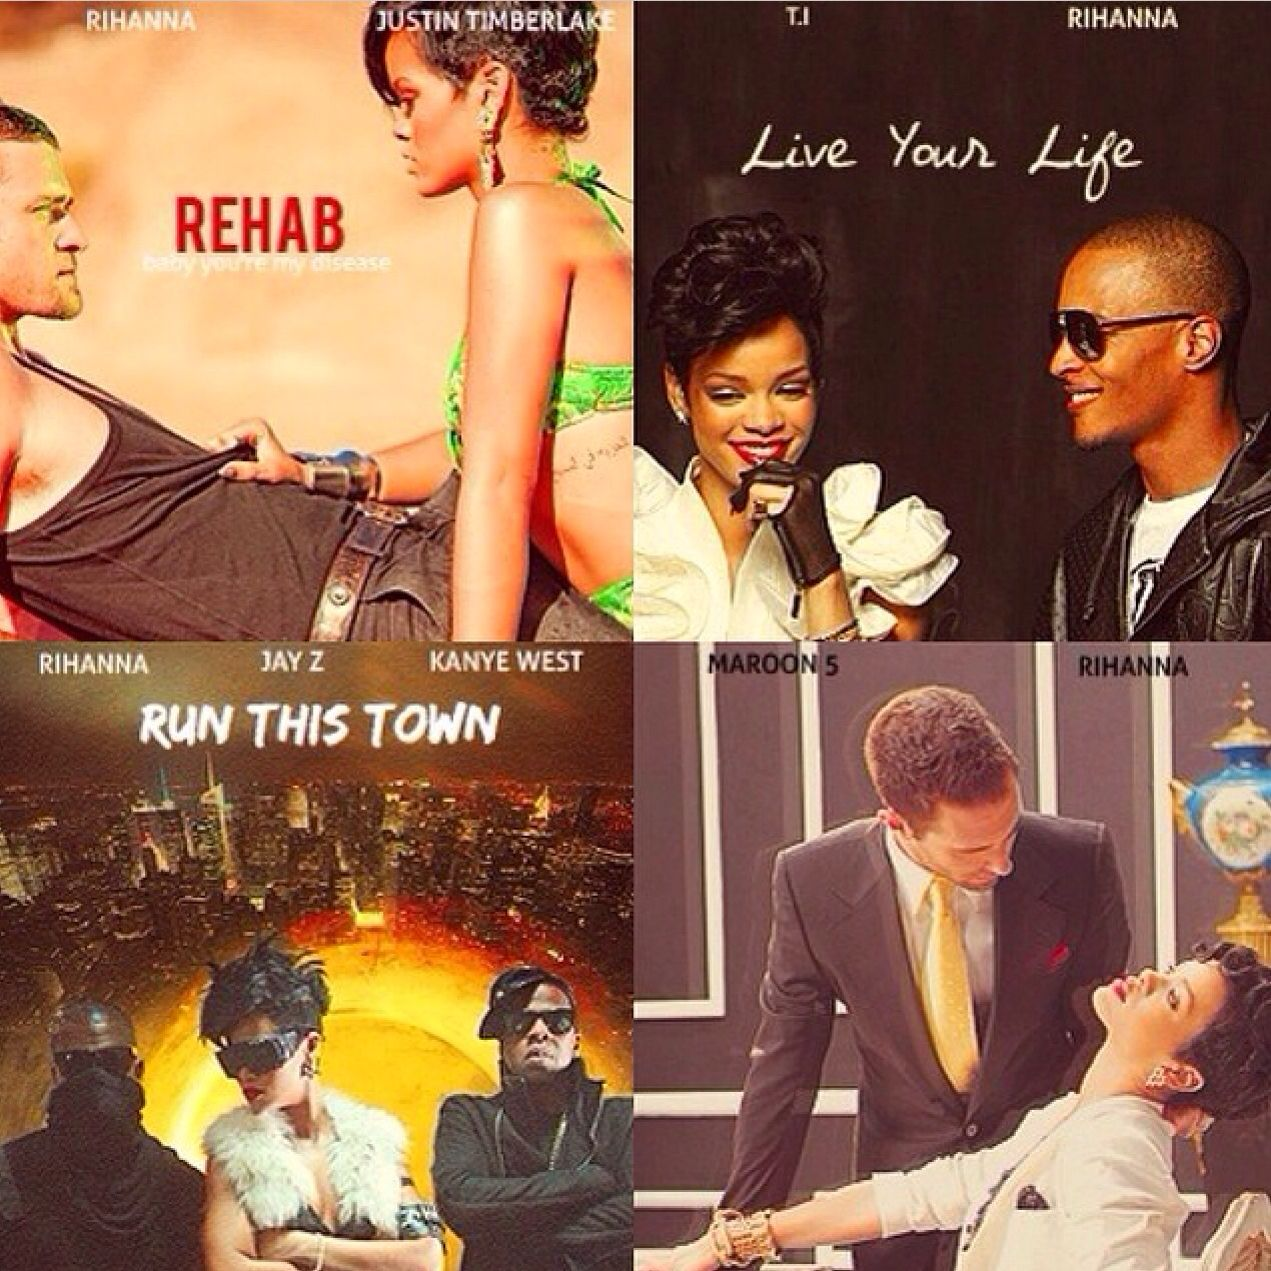 Rihanna S Duets As Movies Rehab Live Your Life Run This Town And If I Never See Your Face Again Which One Would You See Rihanna Duet Trend Setter